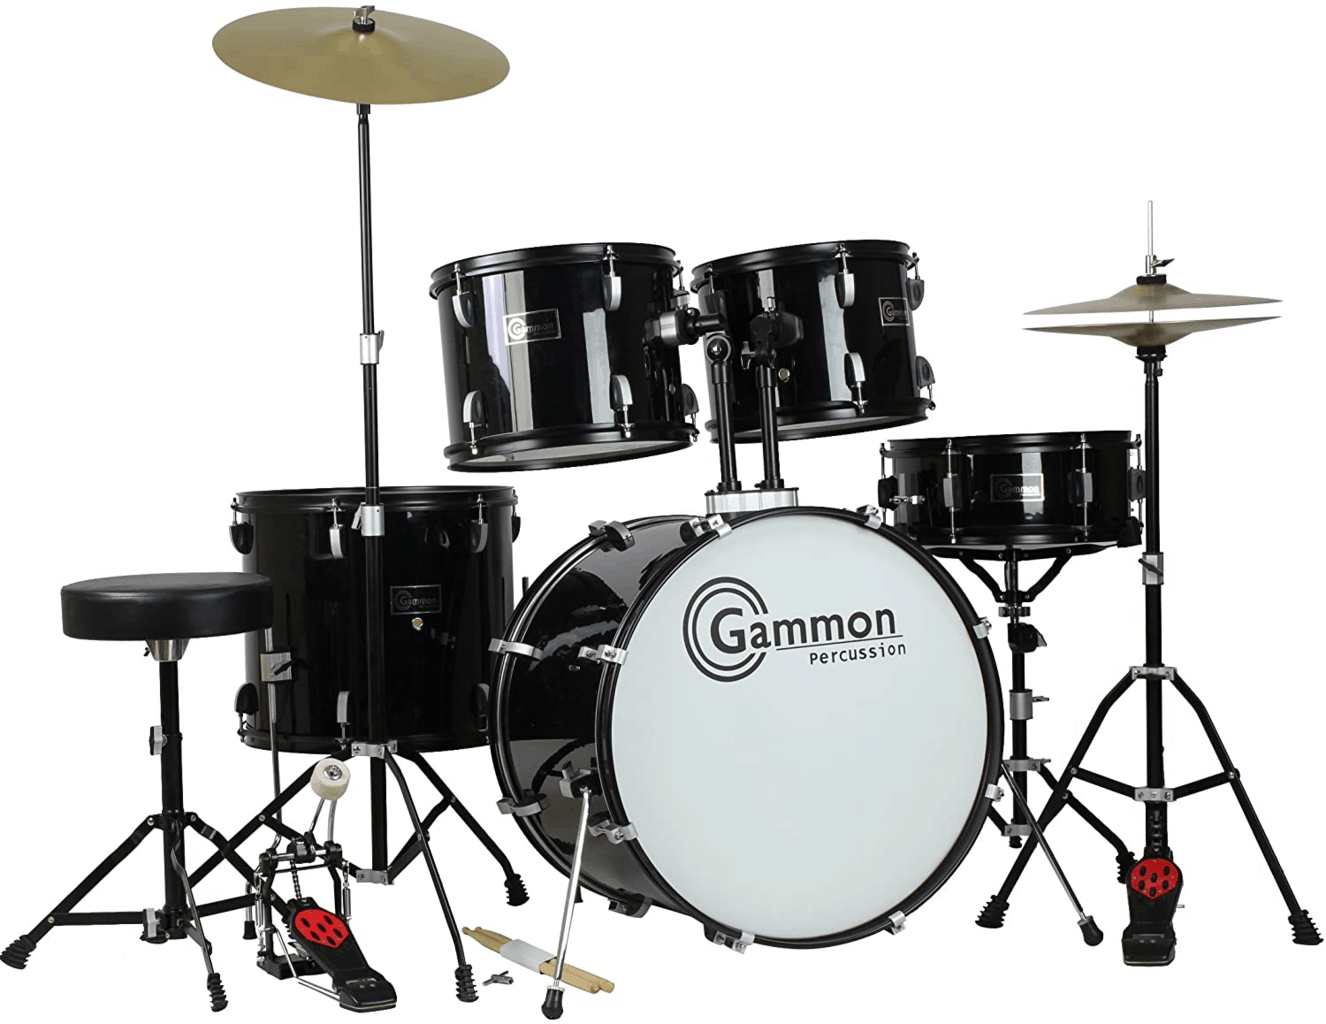 Gammon Percussion